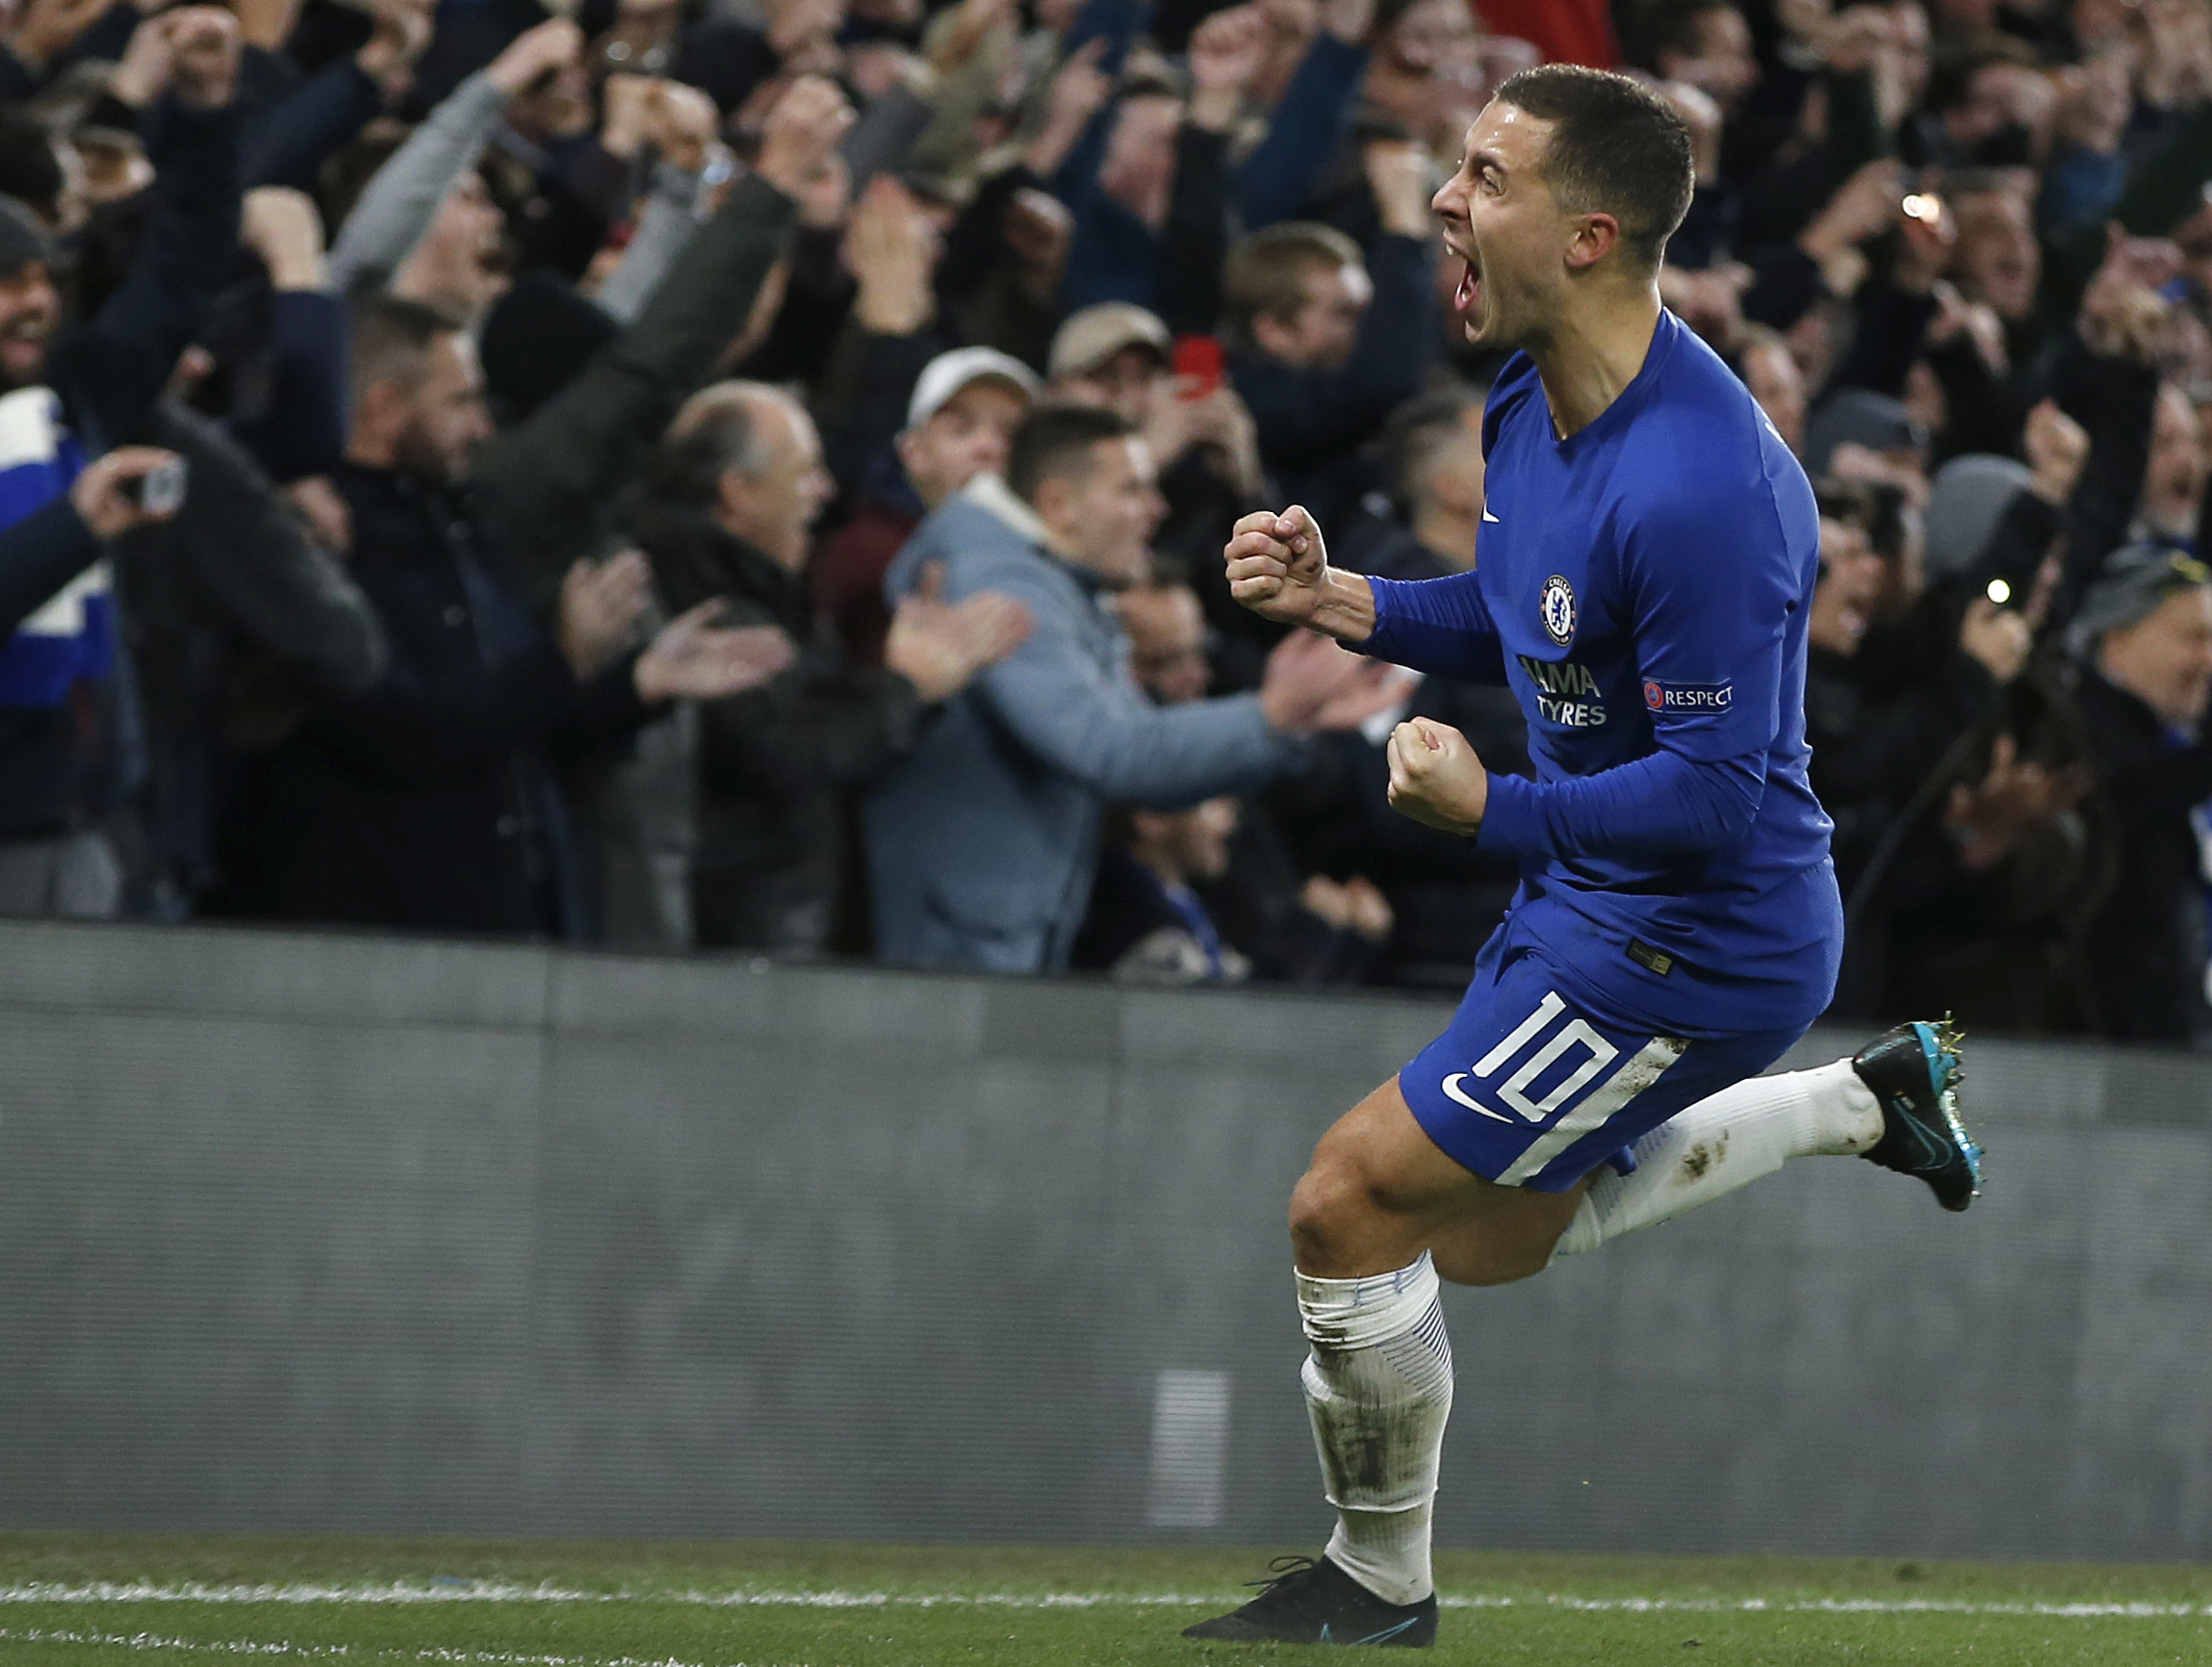 Ballon d'Or 2017: Chelsea star Eden Hazard ranked No.19